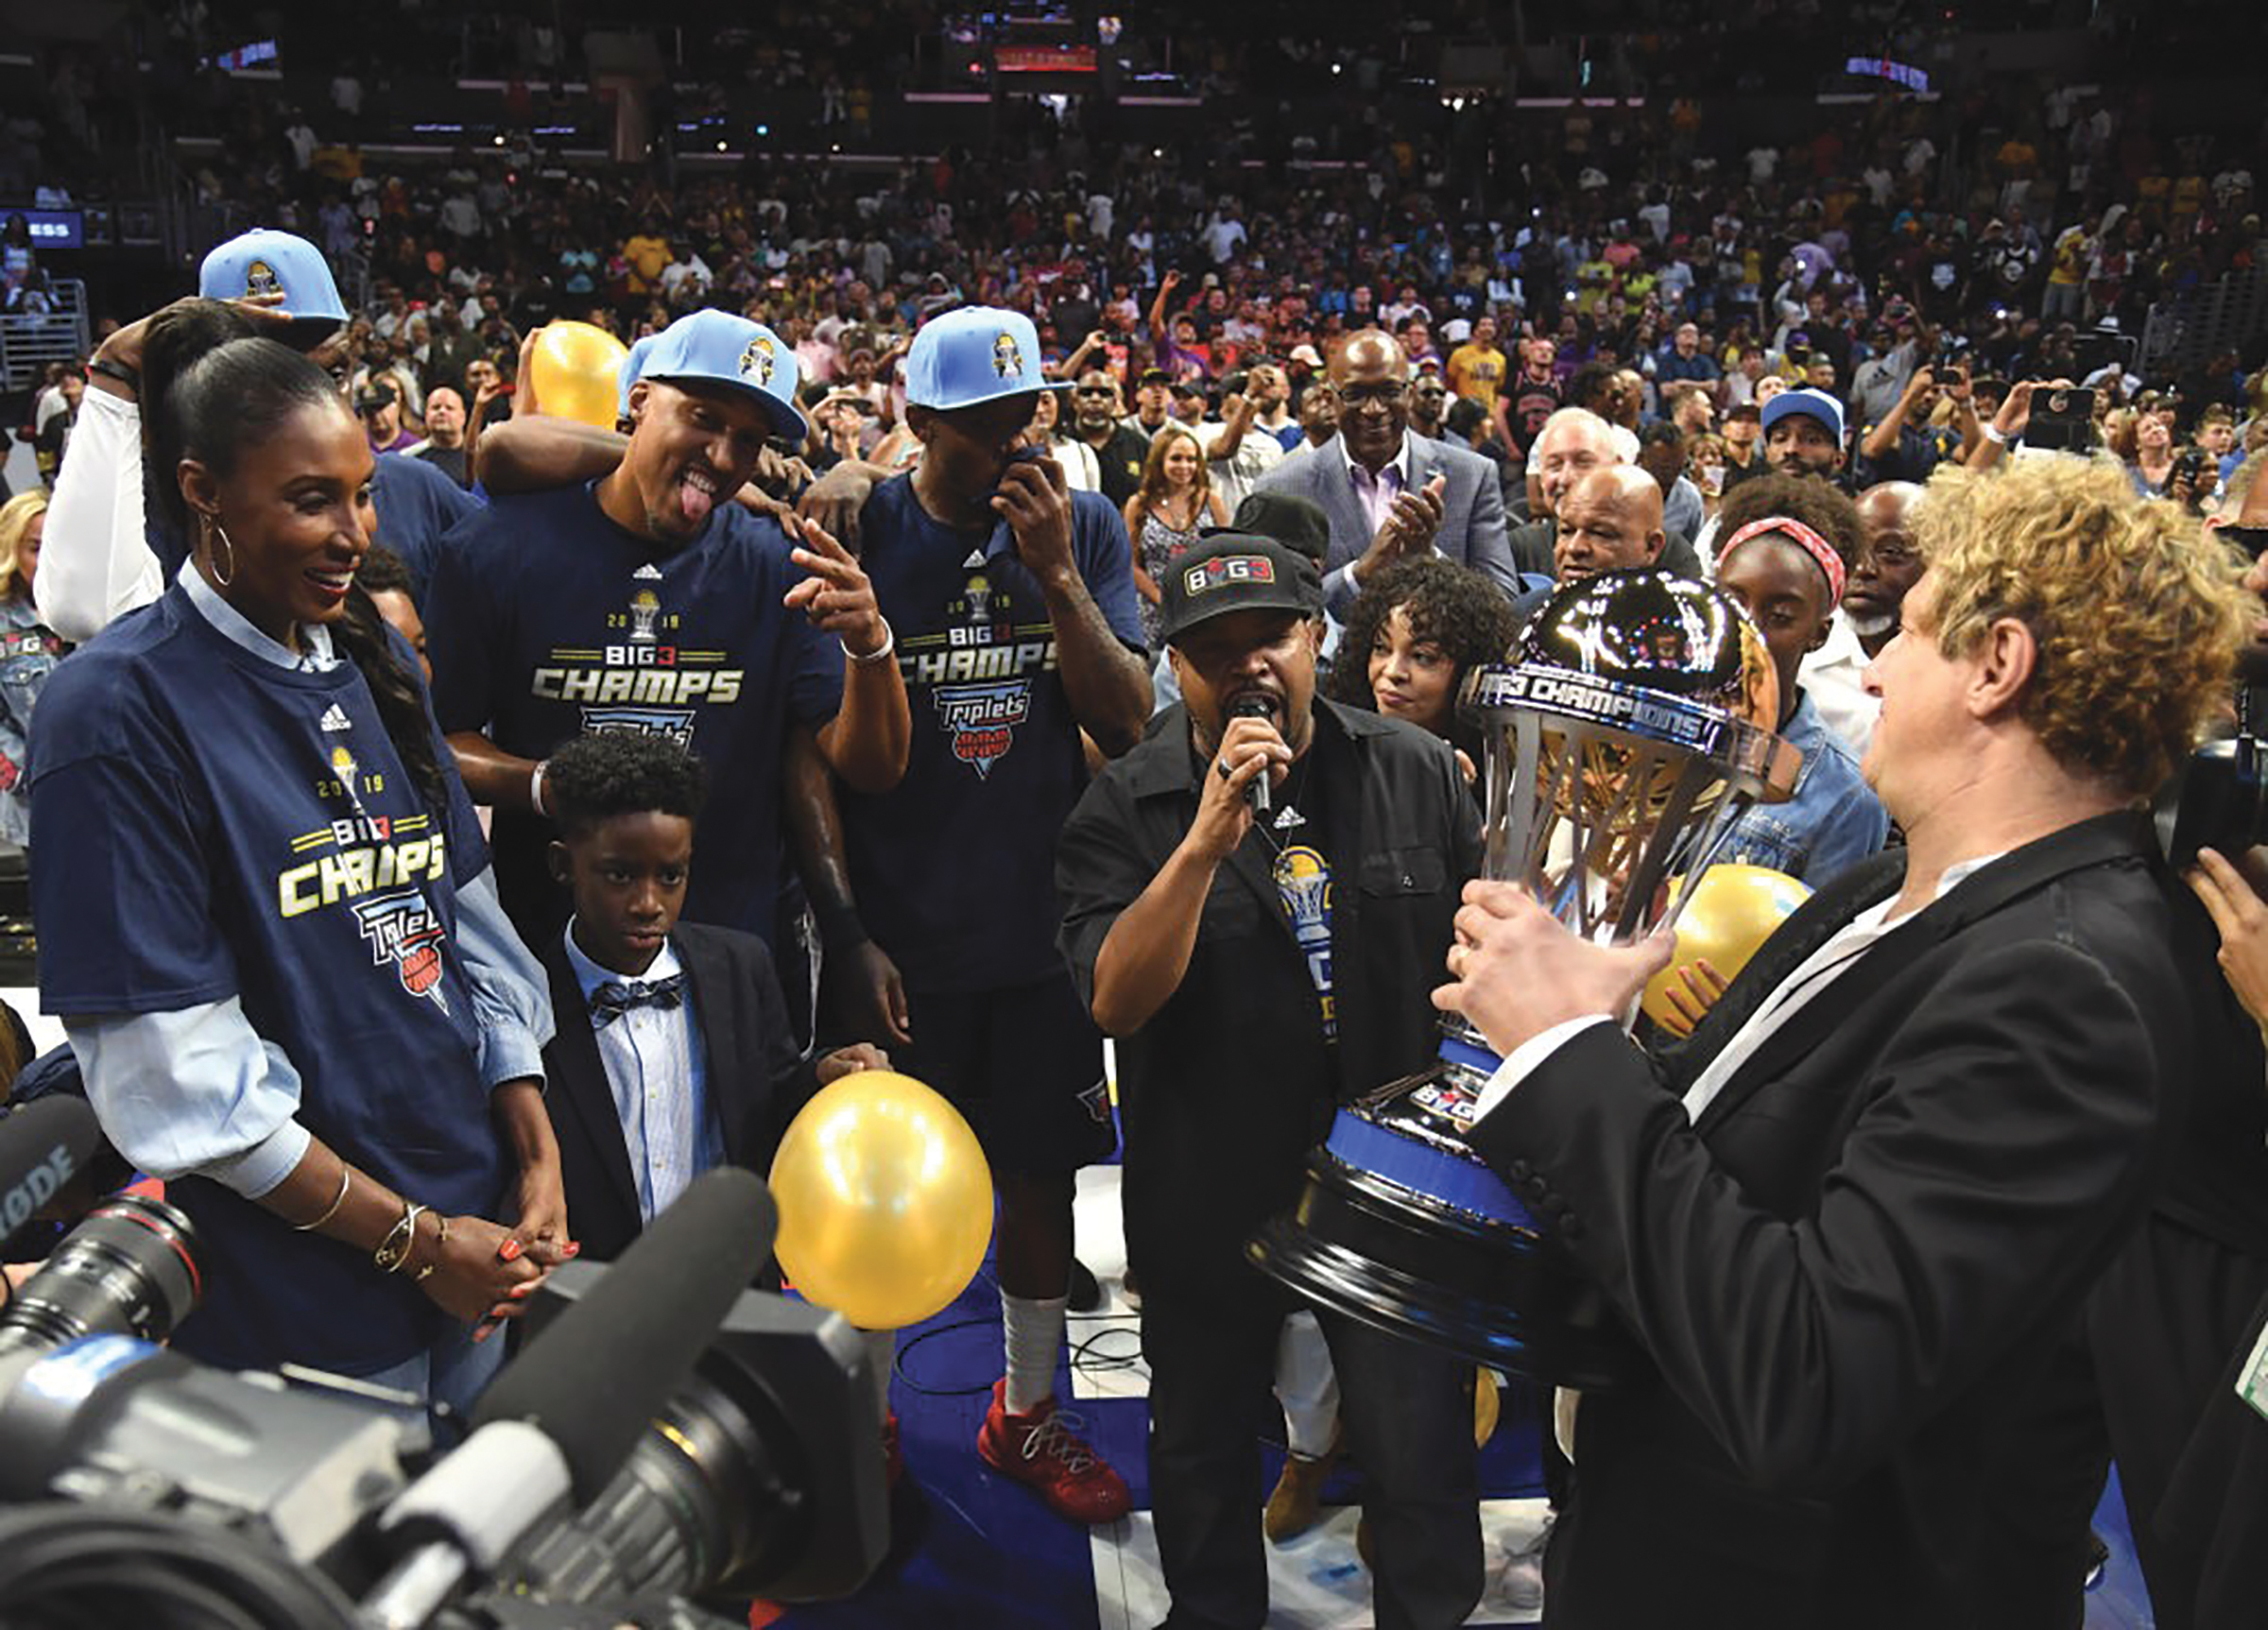 Triplets Win 2019 BIG3 Championship. (Getty Images)